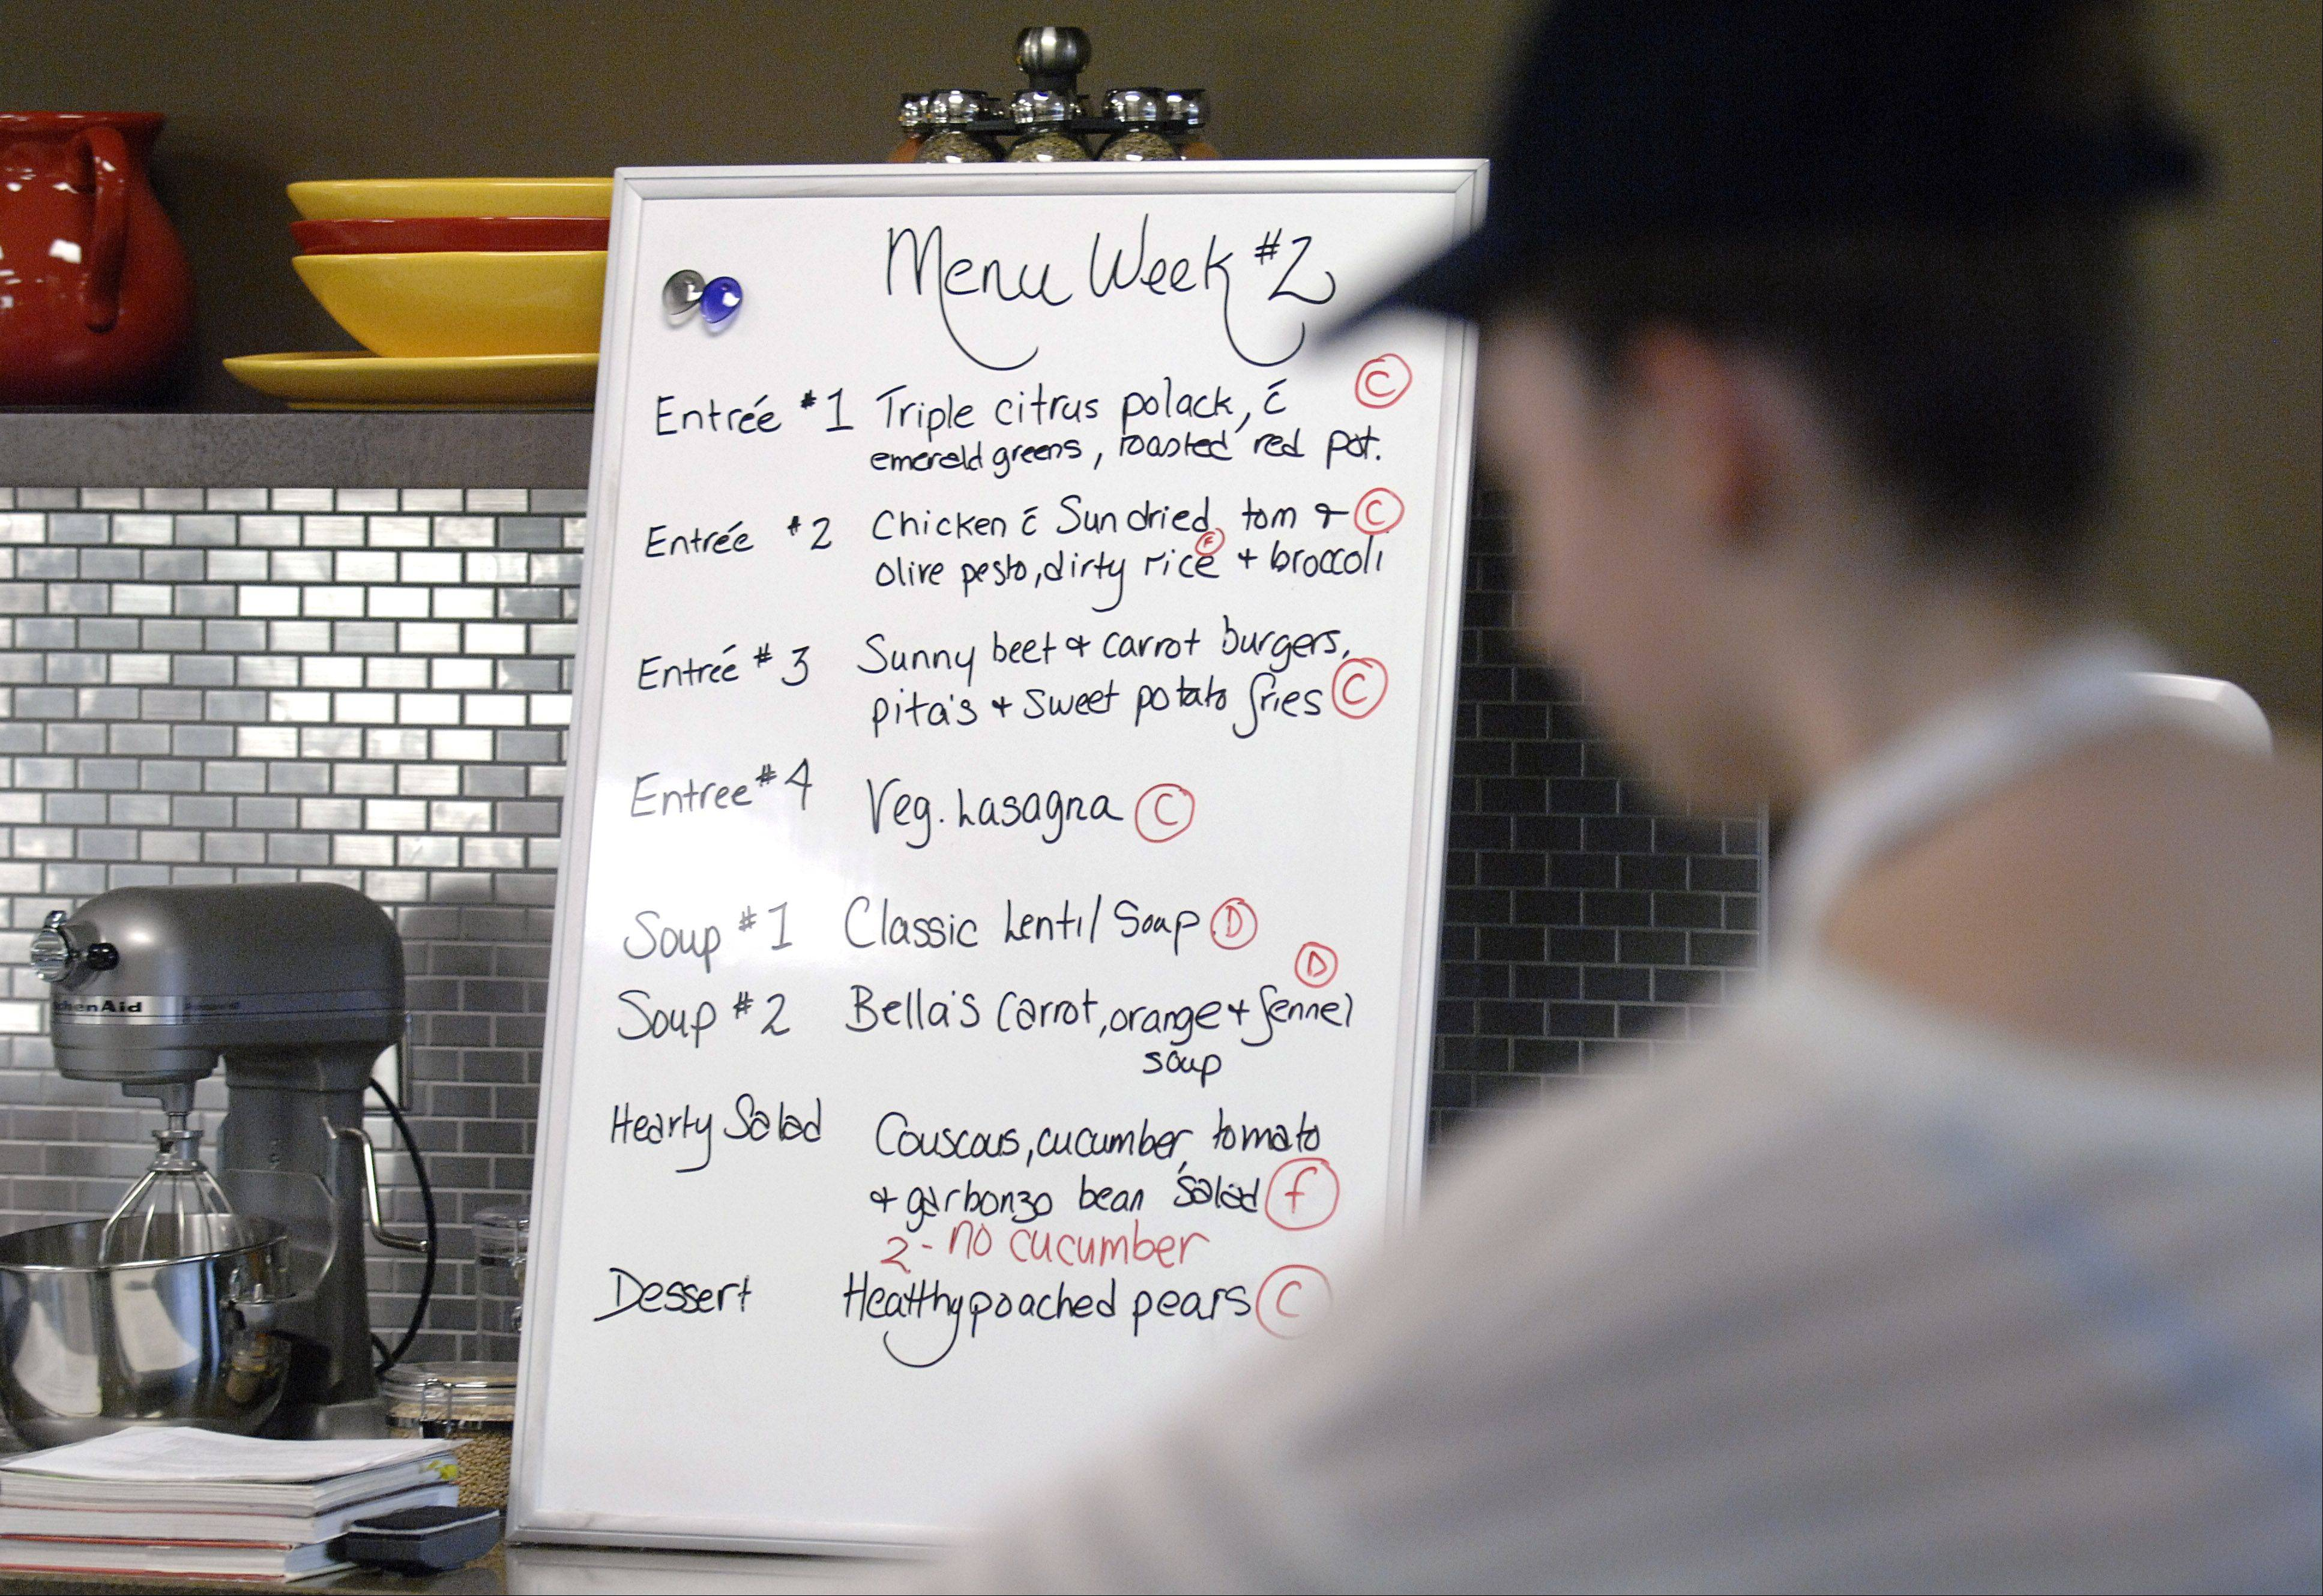 The menu board for this week's meals are on display in the Roquette America kitchen in Geneva, while Lindsay Whitted, 16, works on a dish. Students prepare meals for cancer patients with Fox Valley Food for Health.